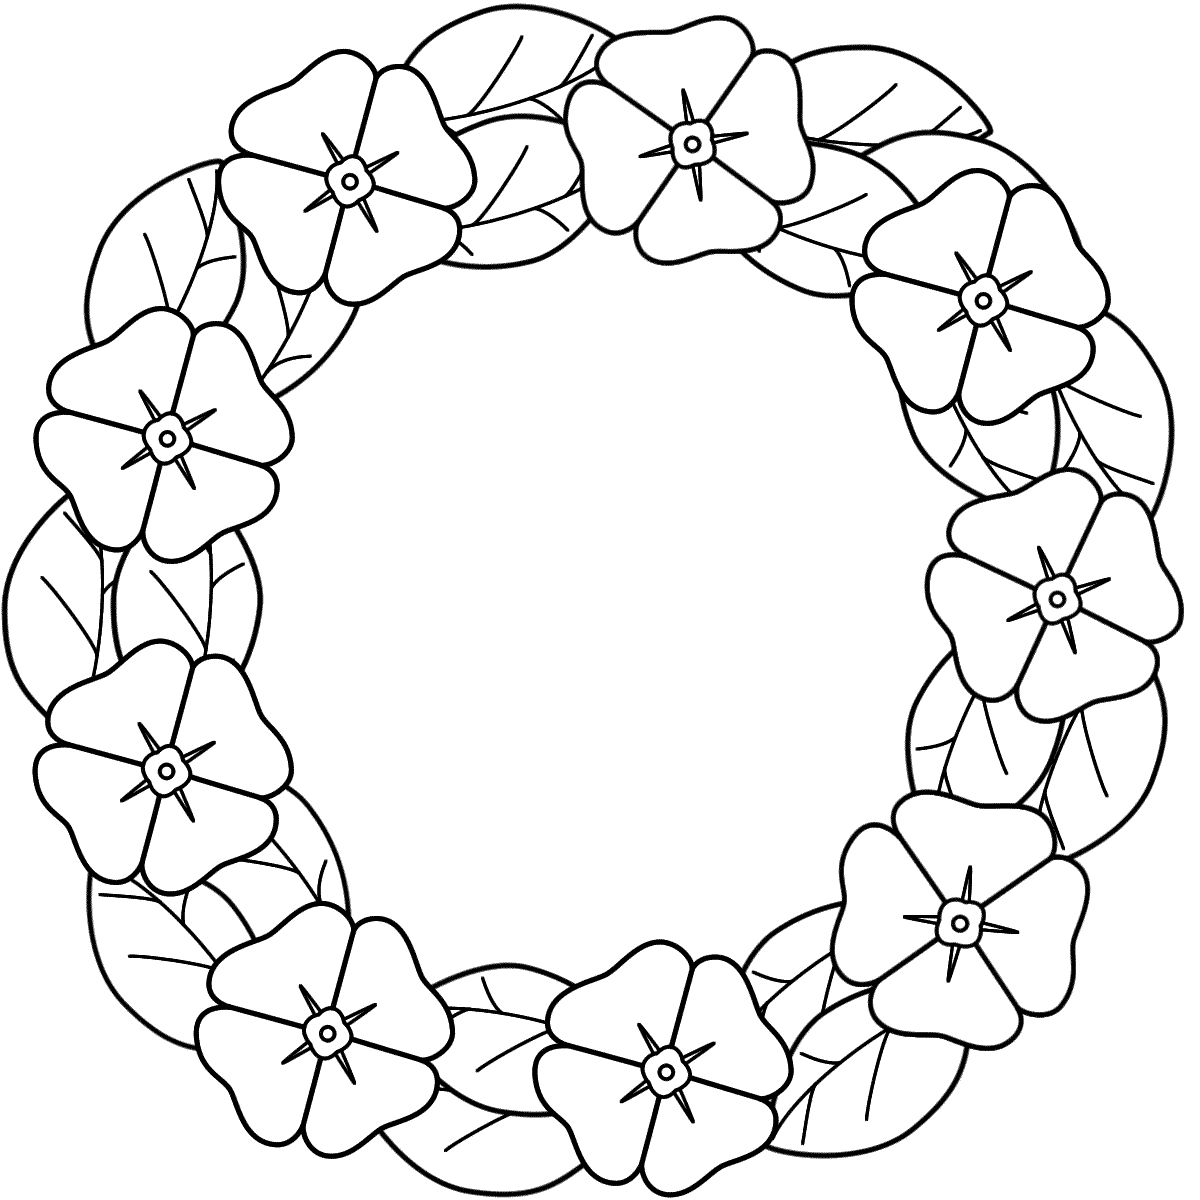 Memorial day flag coloring pages - This Poppy Wreath Coloring Page Features A Picture Of A Poppy Wreath To Color For Remembrance Day The Coloring Page Is Printable And Can Be Used In The